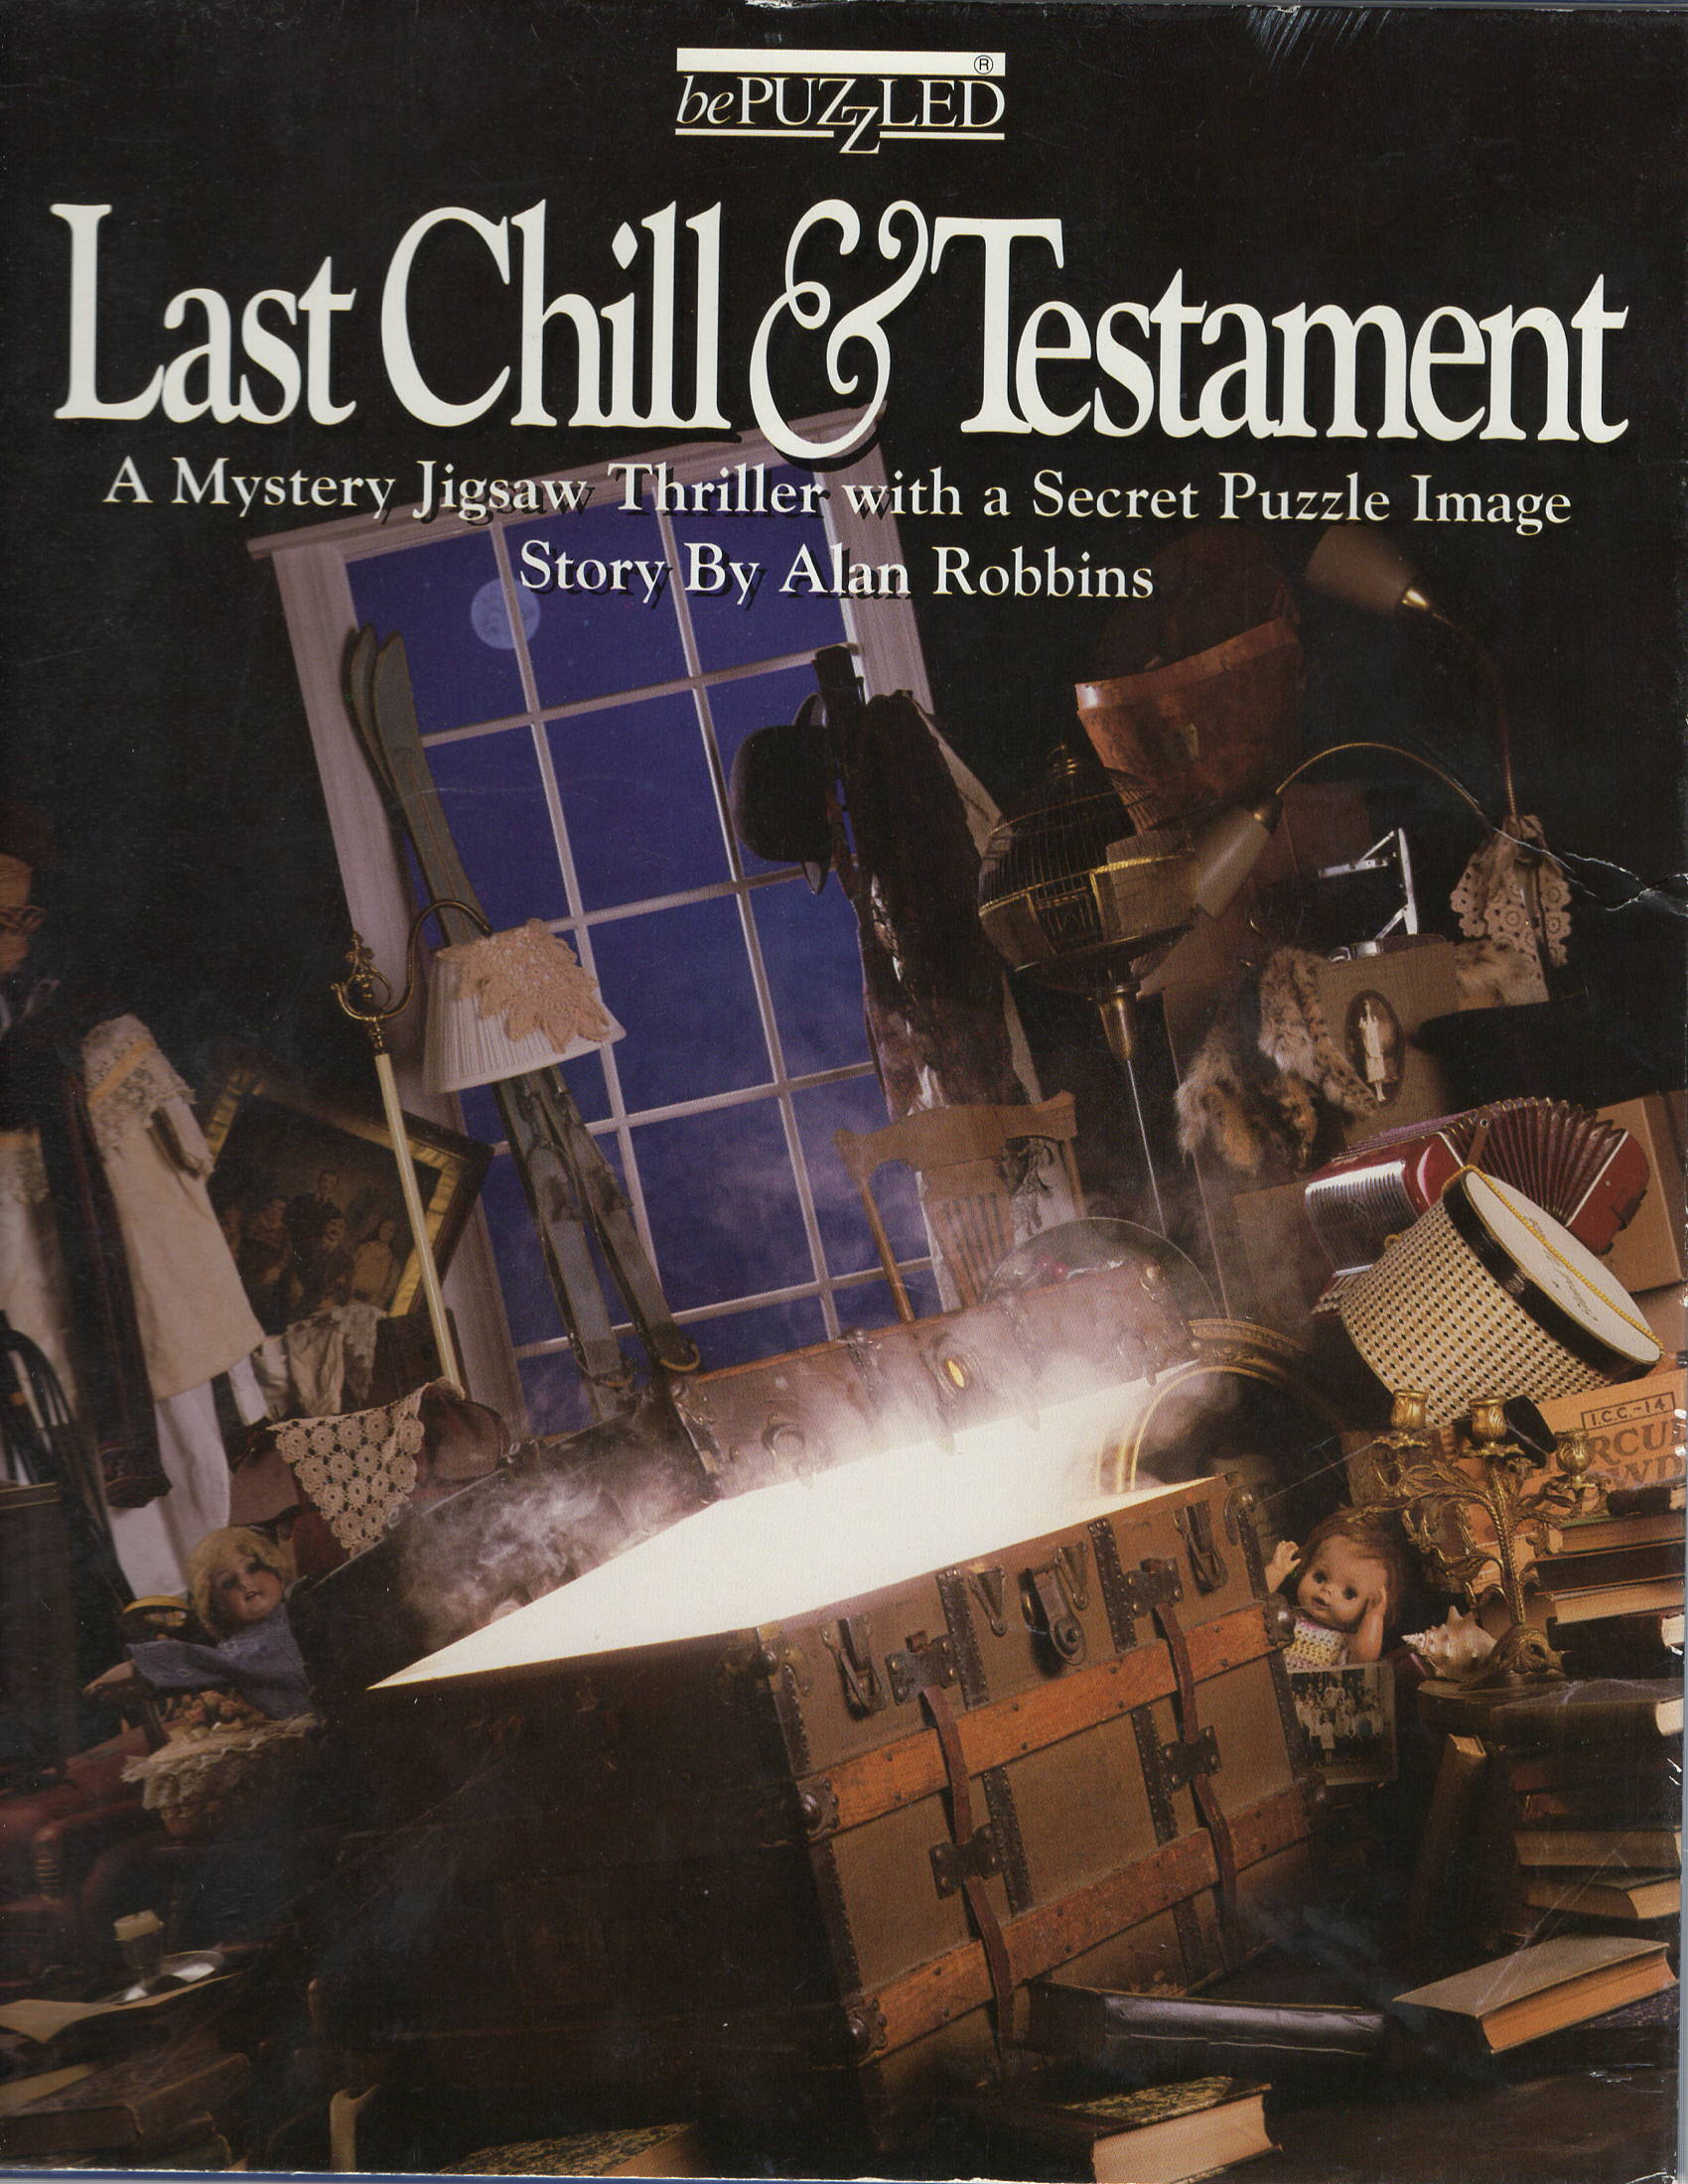 Rental - BePuzzled 1000: Last Chill and Testament - Conundrum House